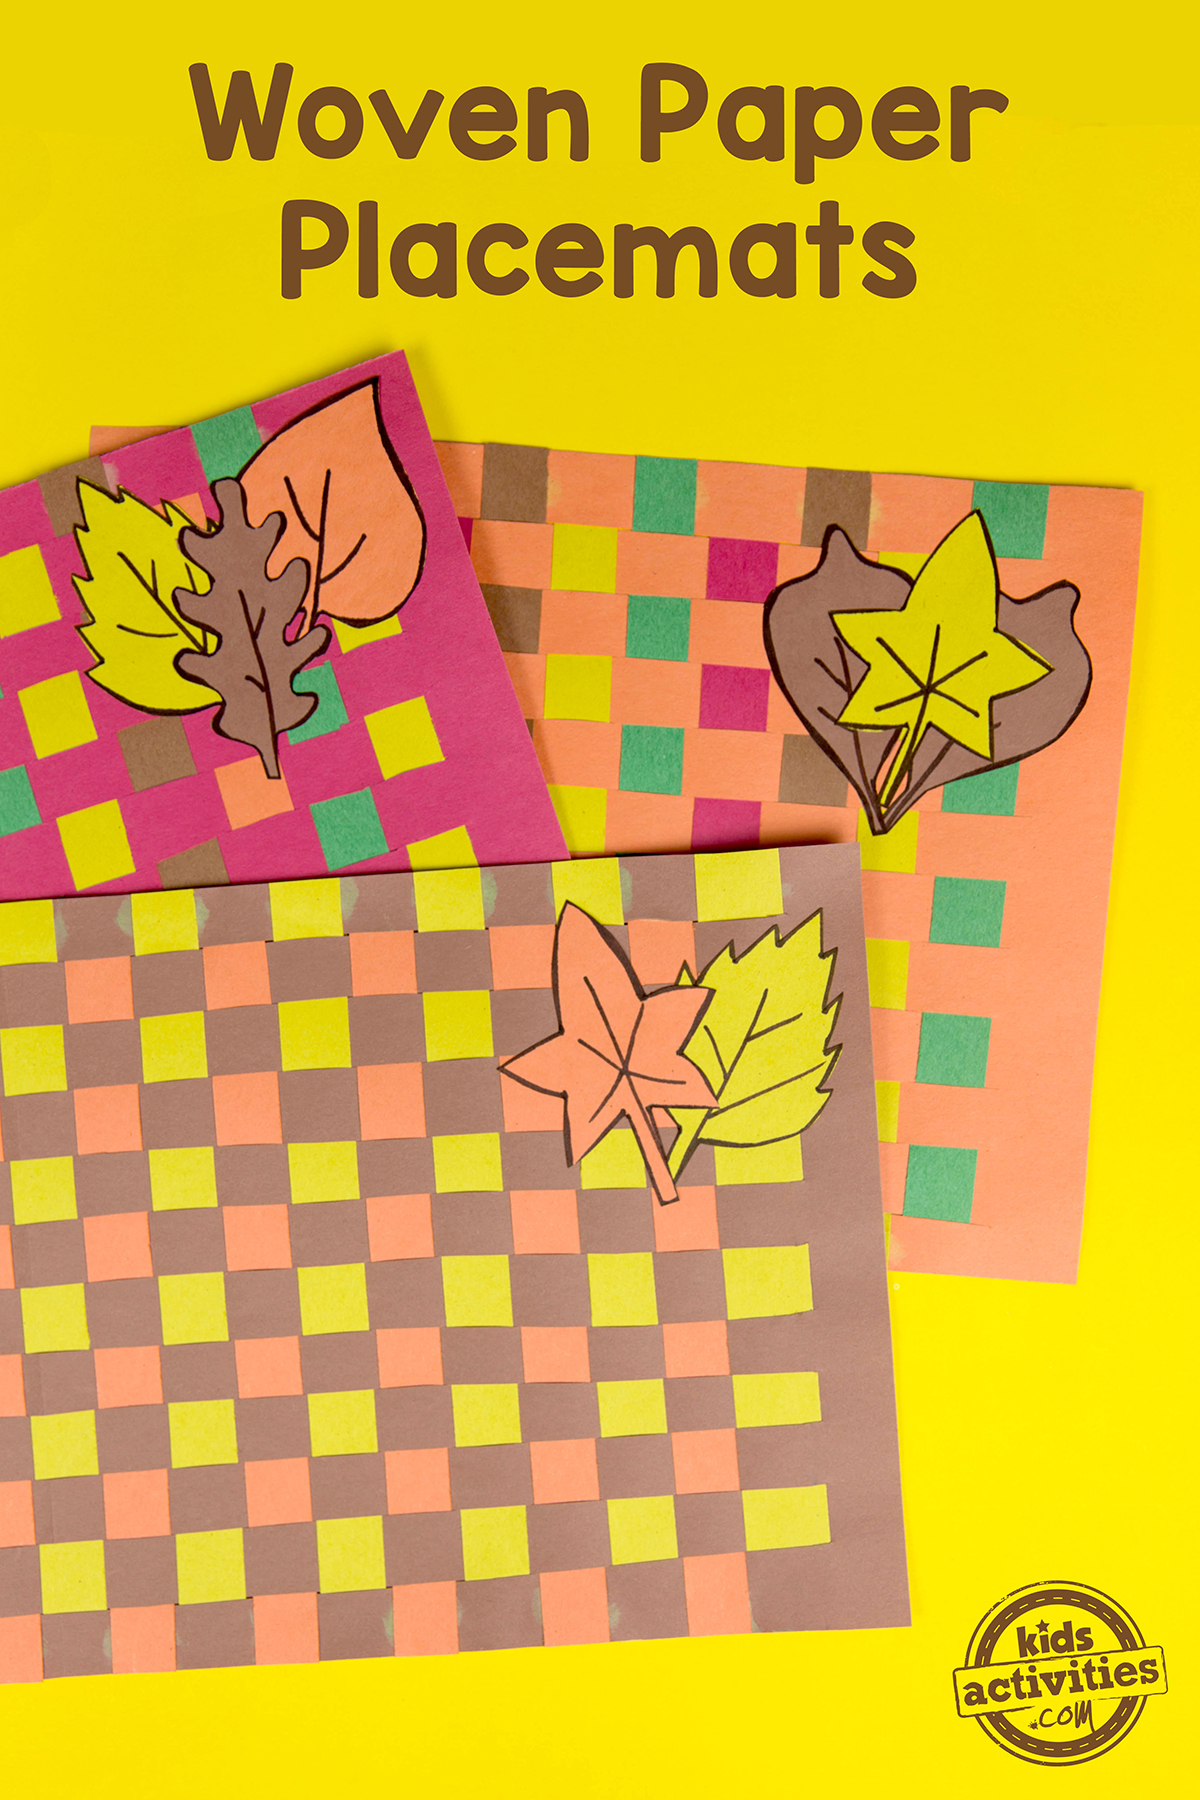 Woven Paper Placemats for Thanksgiving make such a cute placemat.